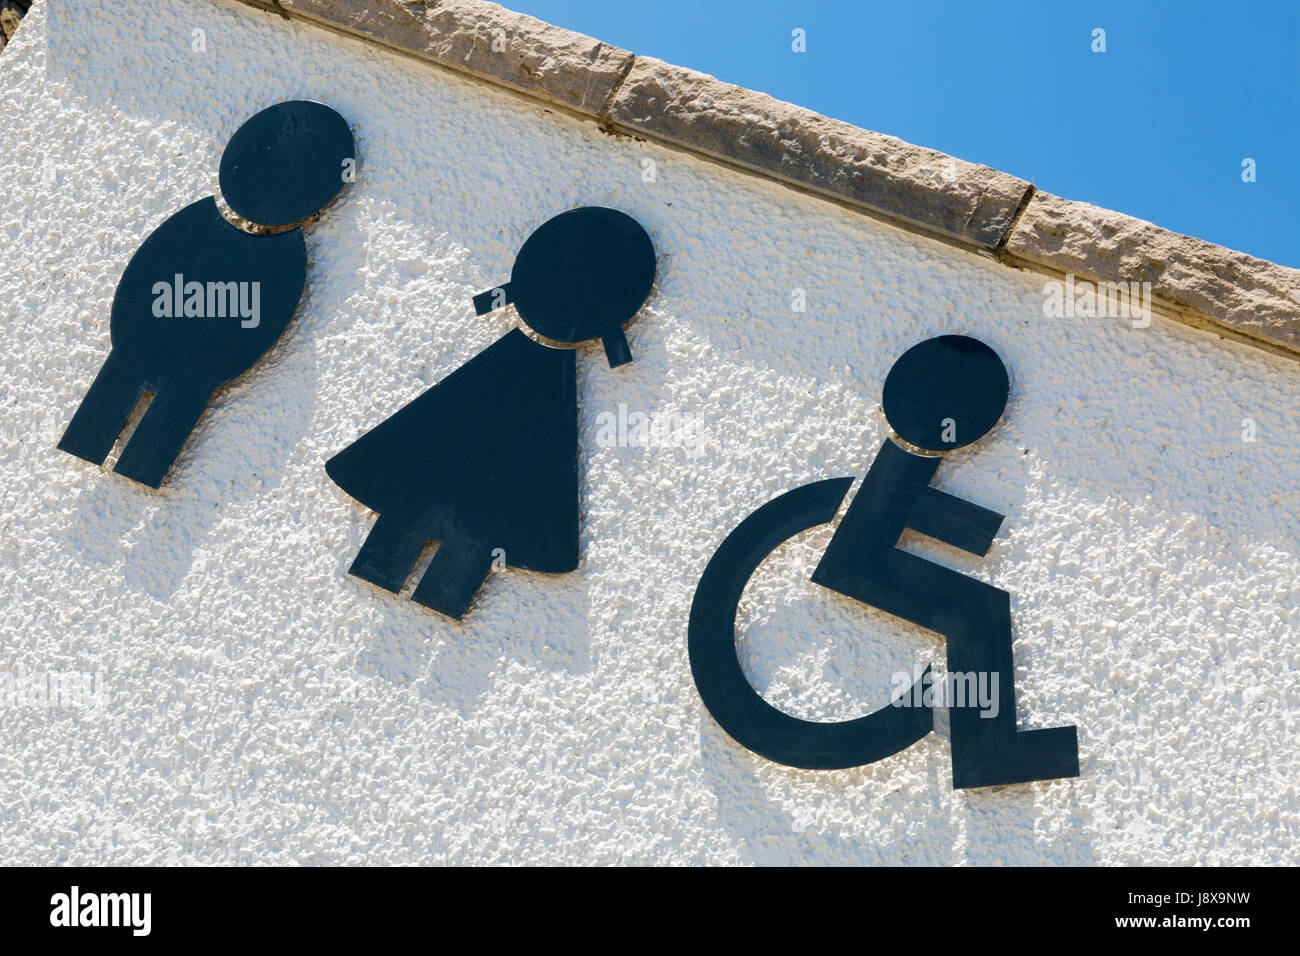 Toilets public conveniences symbols at Swanage, Dorset in May - Stock Image